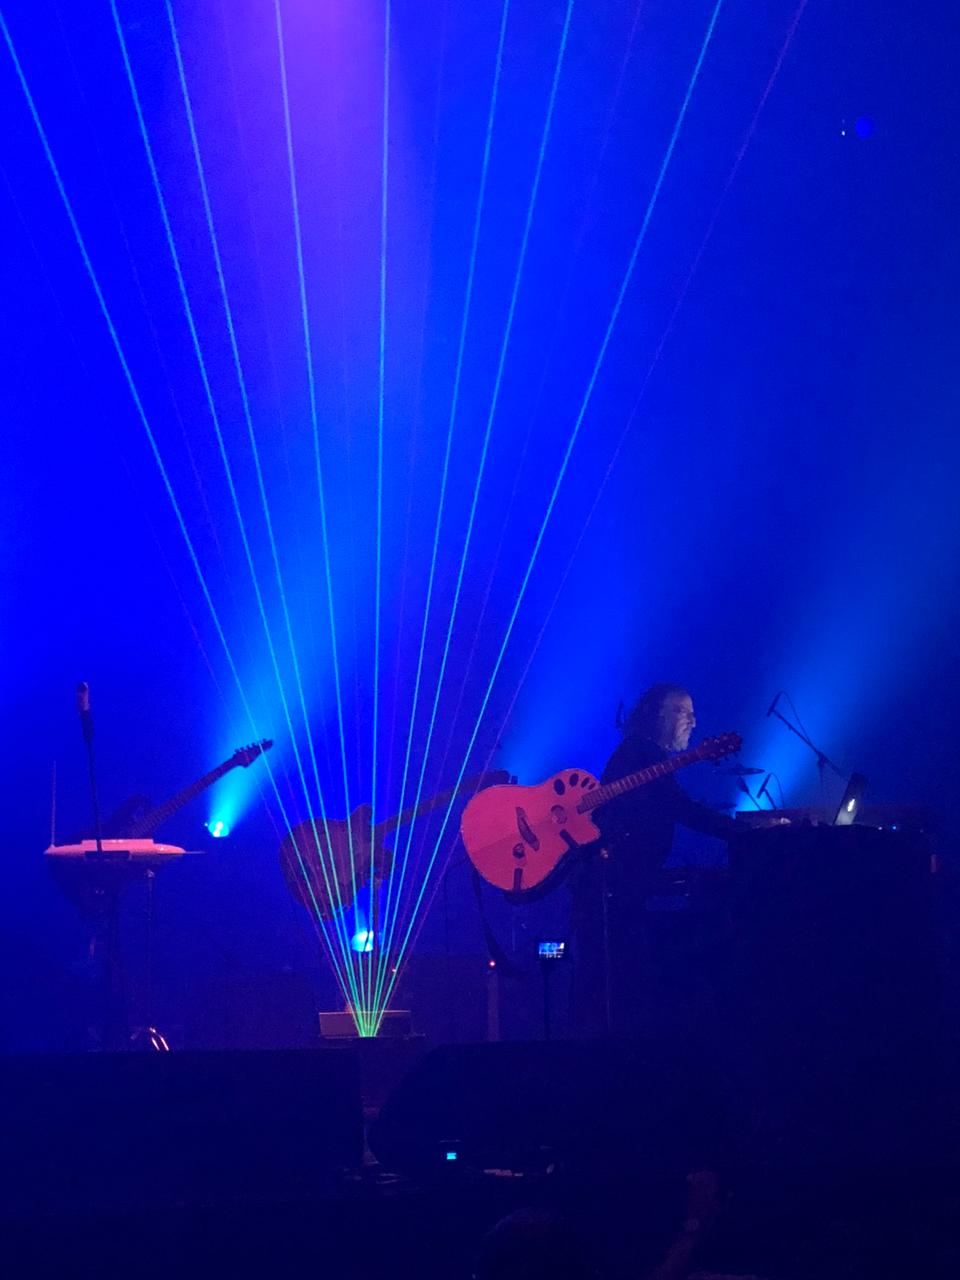 Gokcen Kaynatan's concert on December 16, 2017 in Istanbul ran into some technical difficulties, which the artist was able to turn to his advantage.